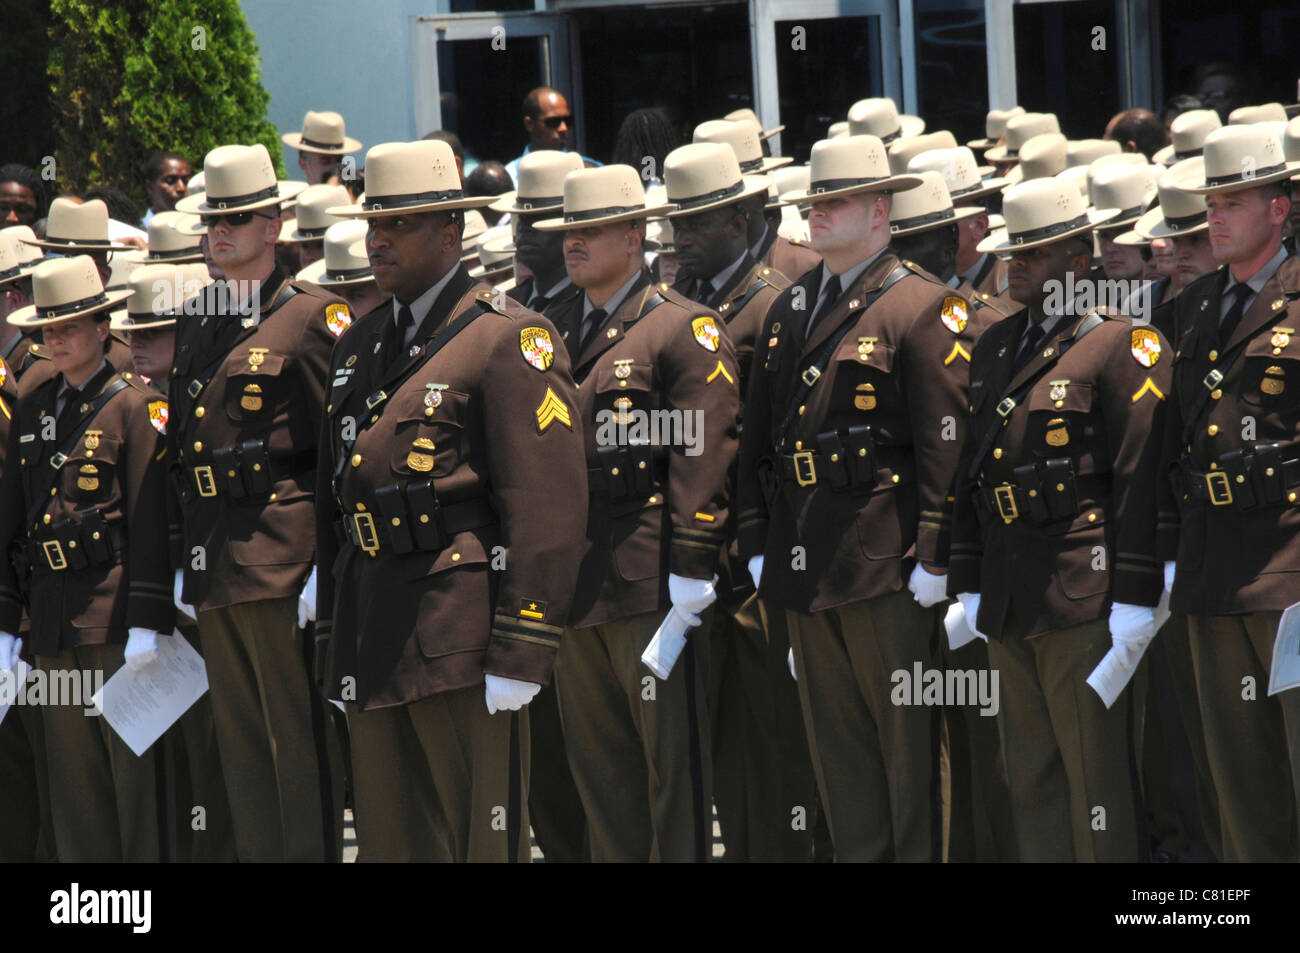 Maryland State Troopers stand at attention at the funeral for a Maryland State Trooper who was killed in the line - Stock Image